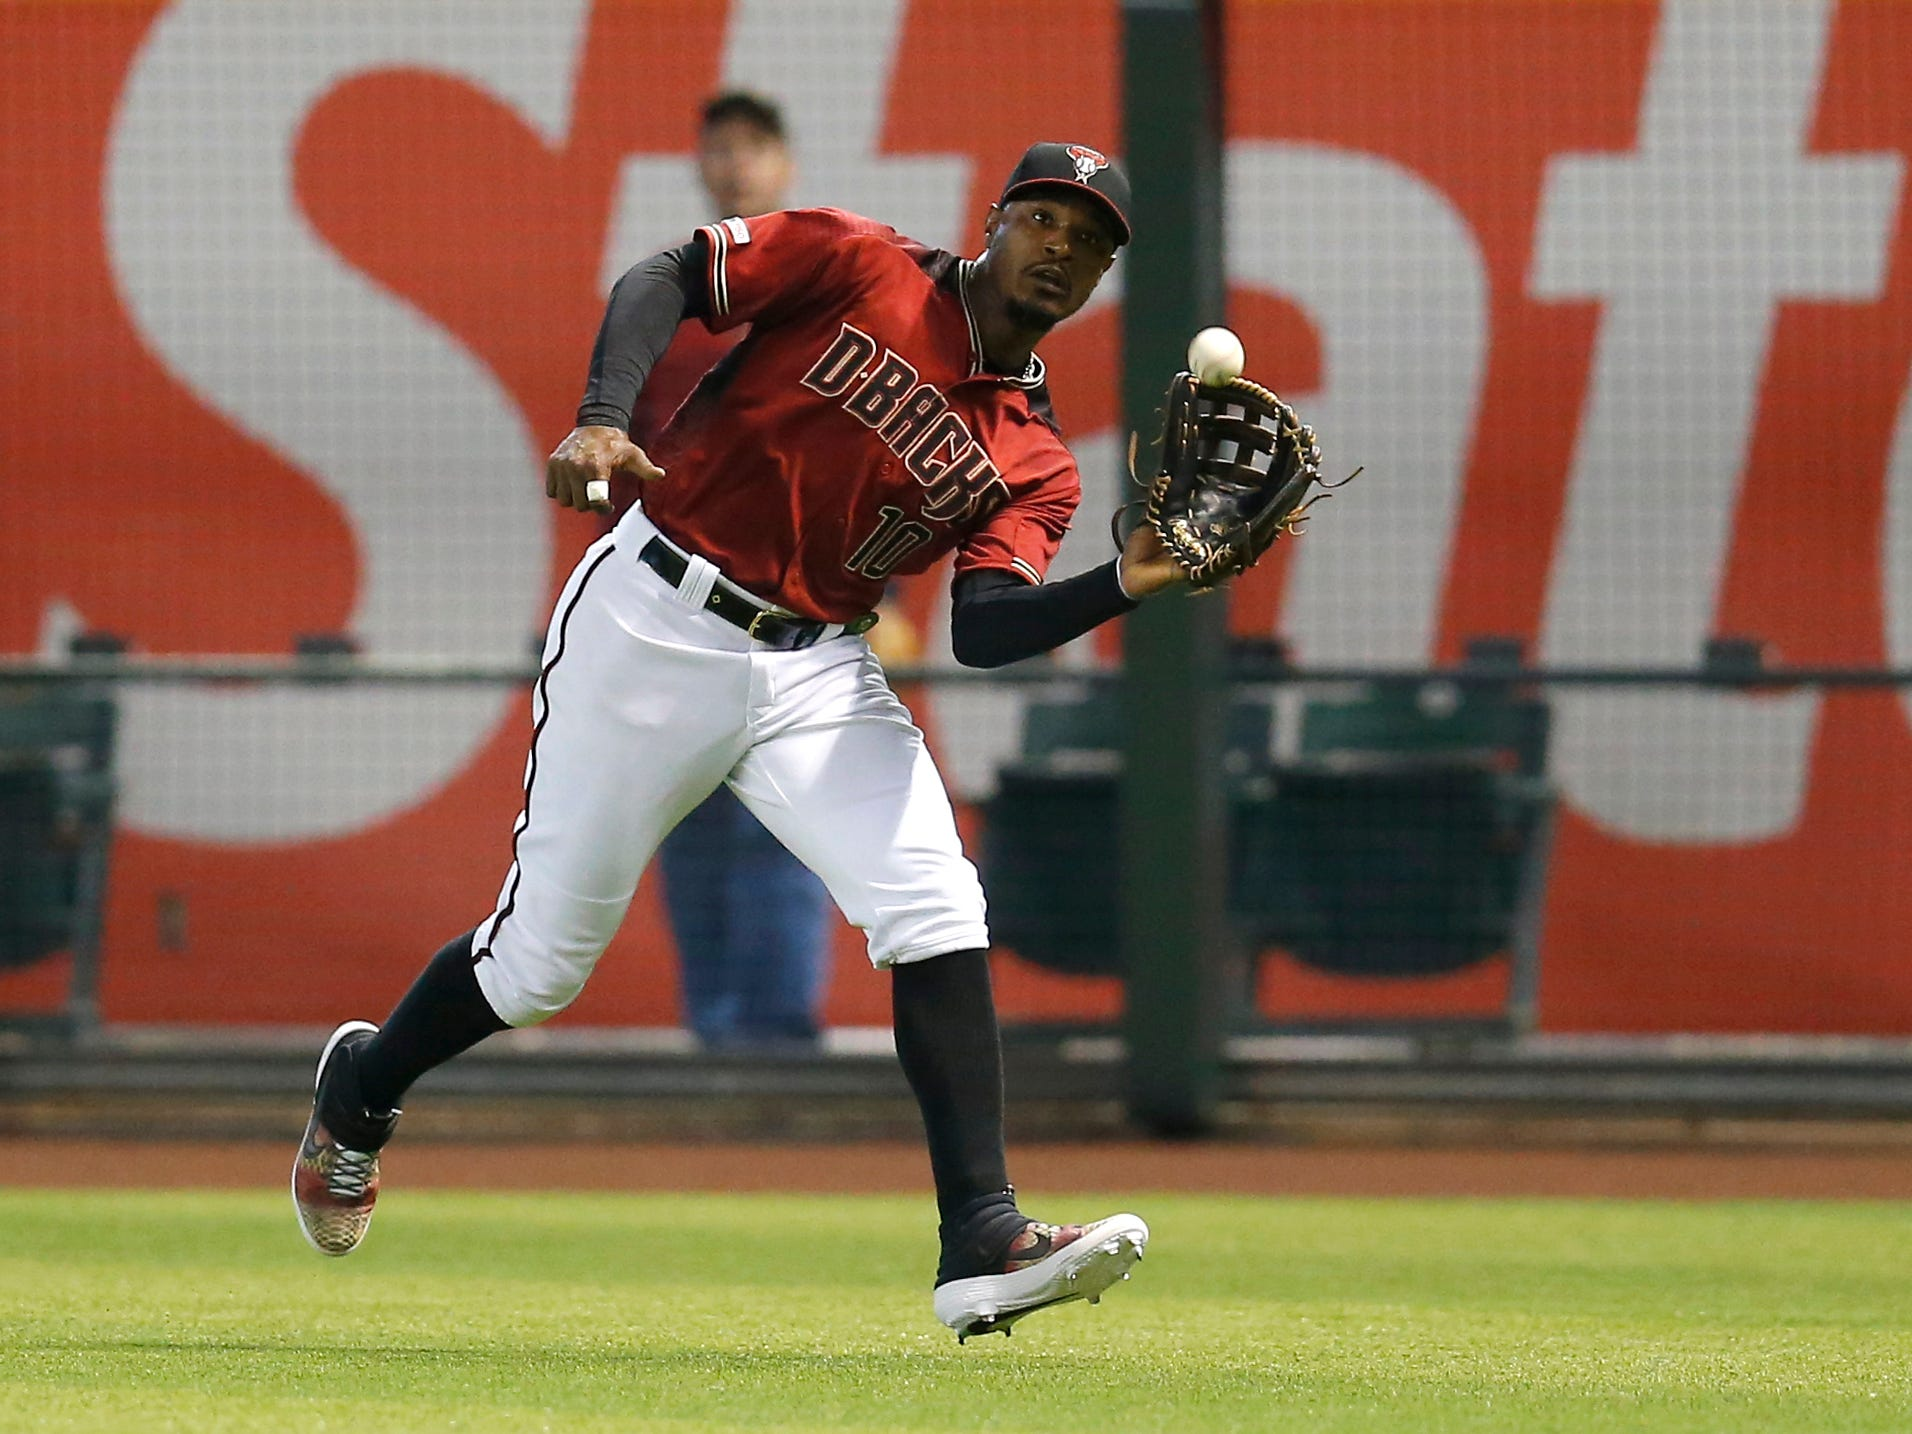 Arizona Diamondbacks right fielder Adam Jones makes a running catch on a ball hit by Hunter Renfroe in the first inning during a baseball game, Sunday, April 14, 2019, in Phoenix. (AP Photo/Rick Scuteri)